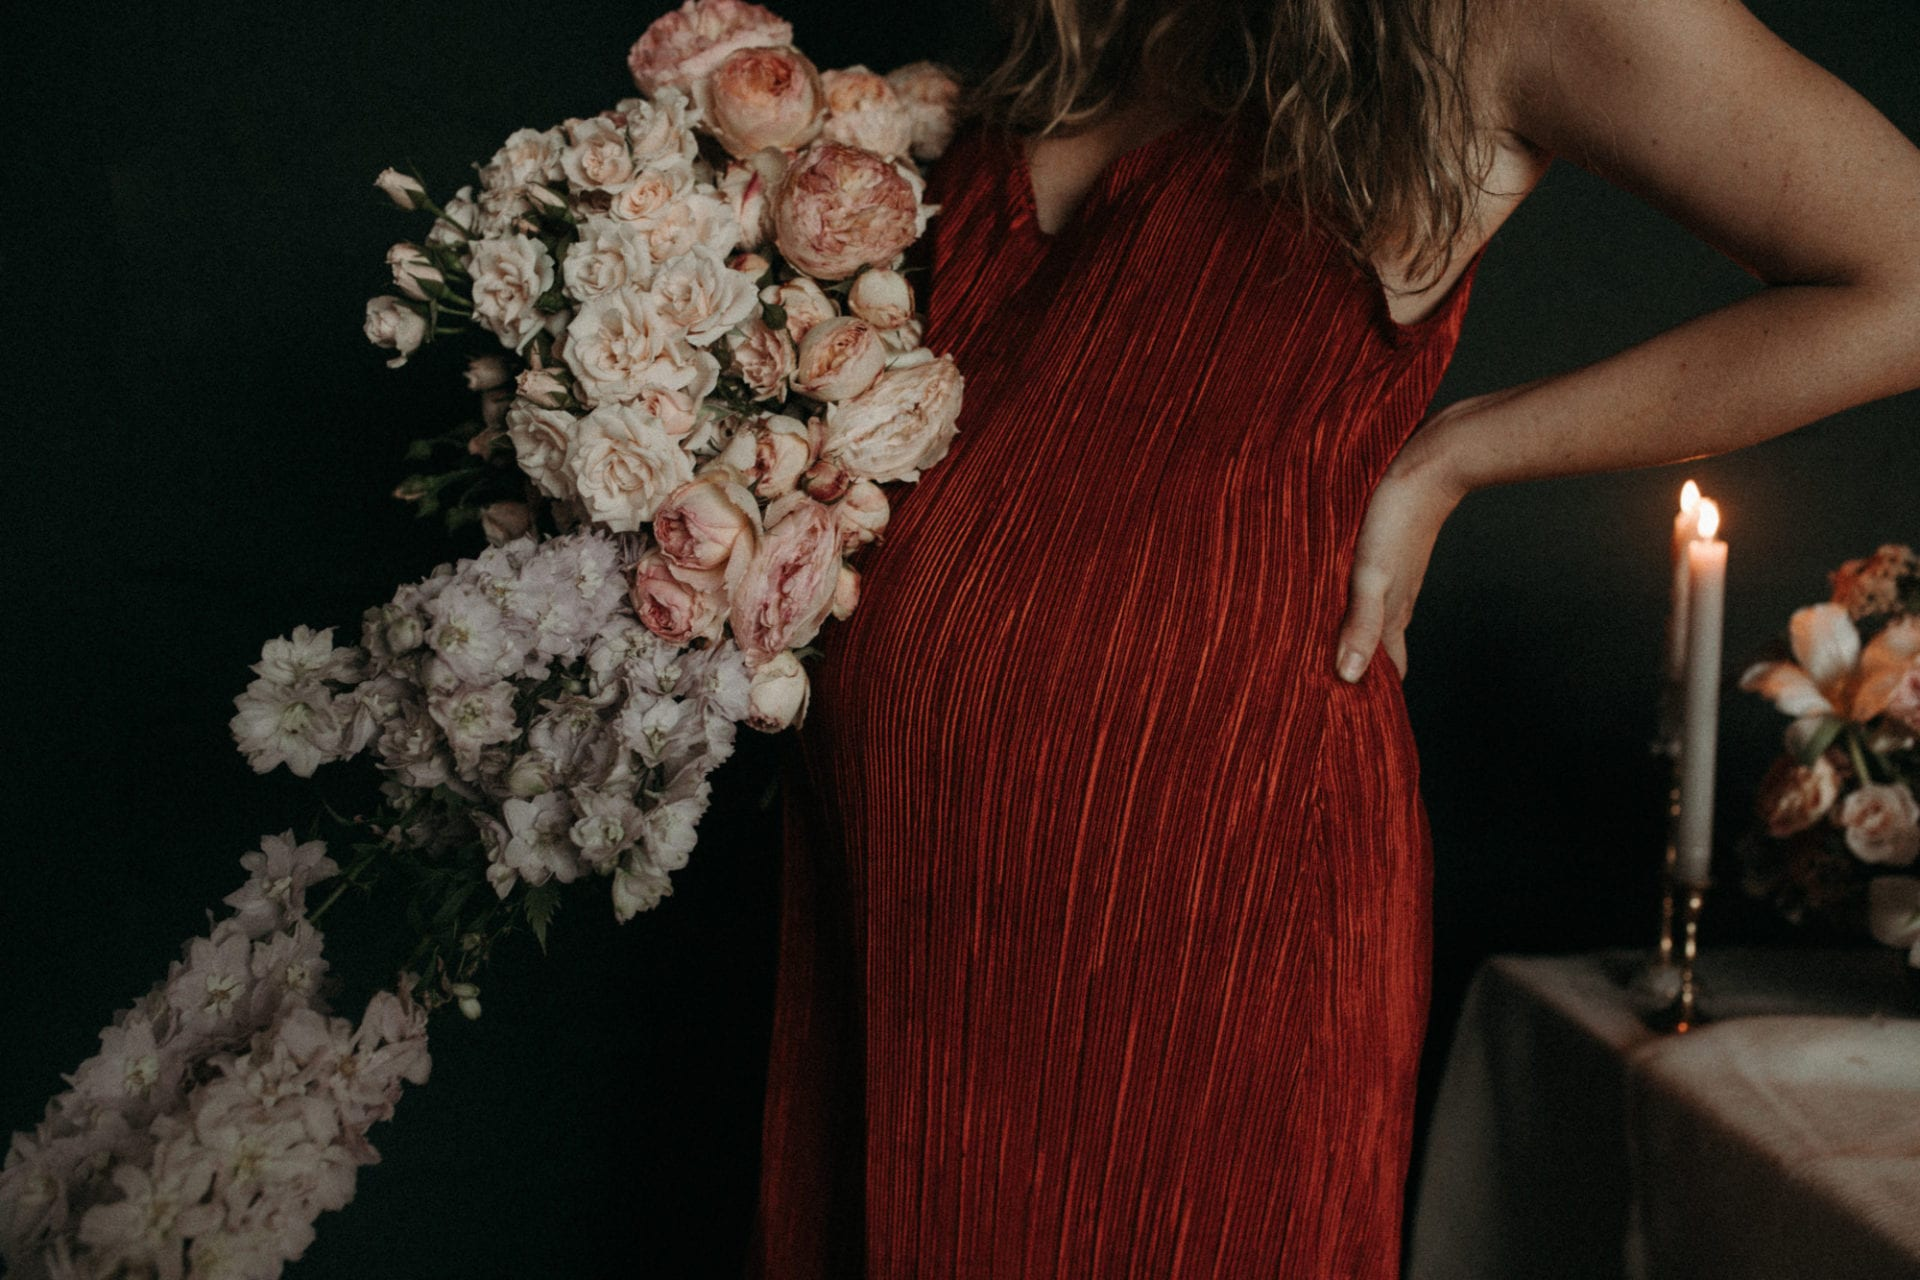 Momma Florist: 34 Weeks Pregnant - Adore Weddings